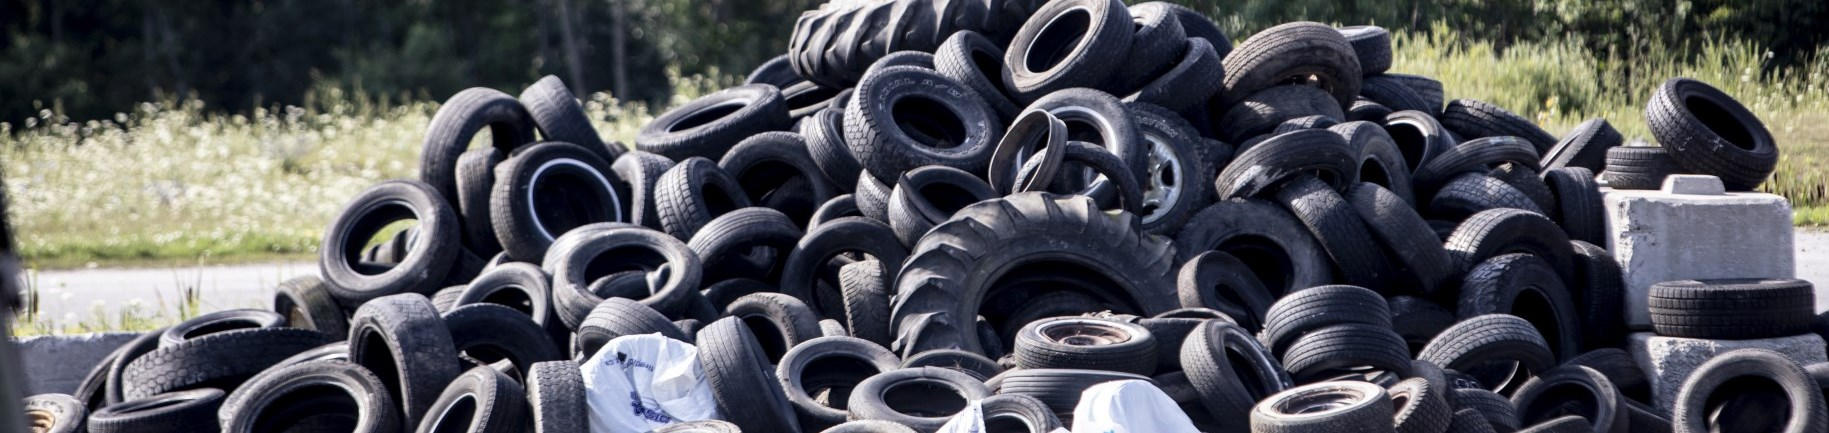 Pile of used car tires